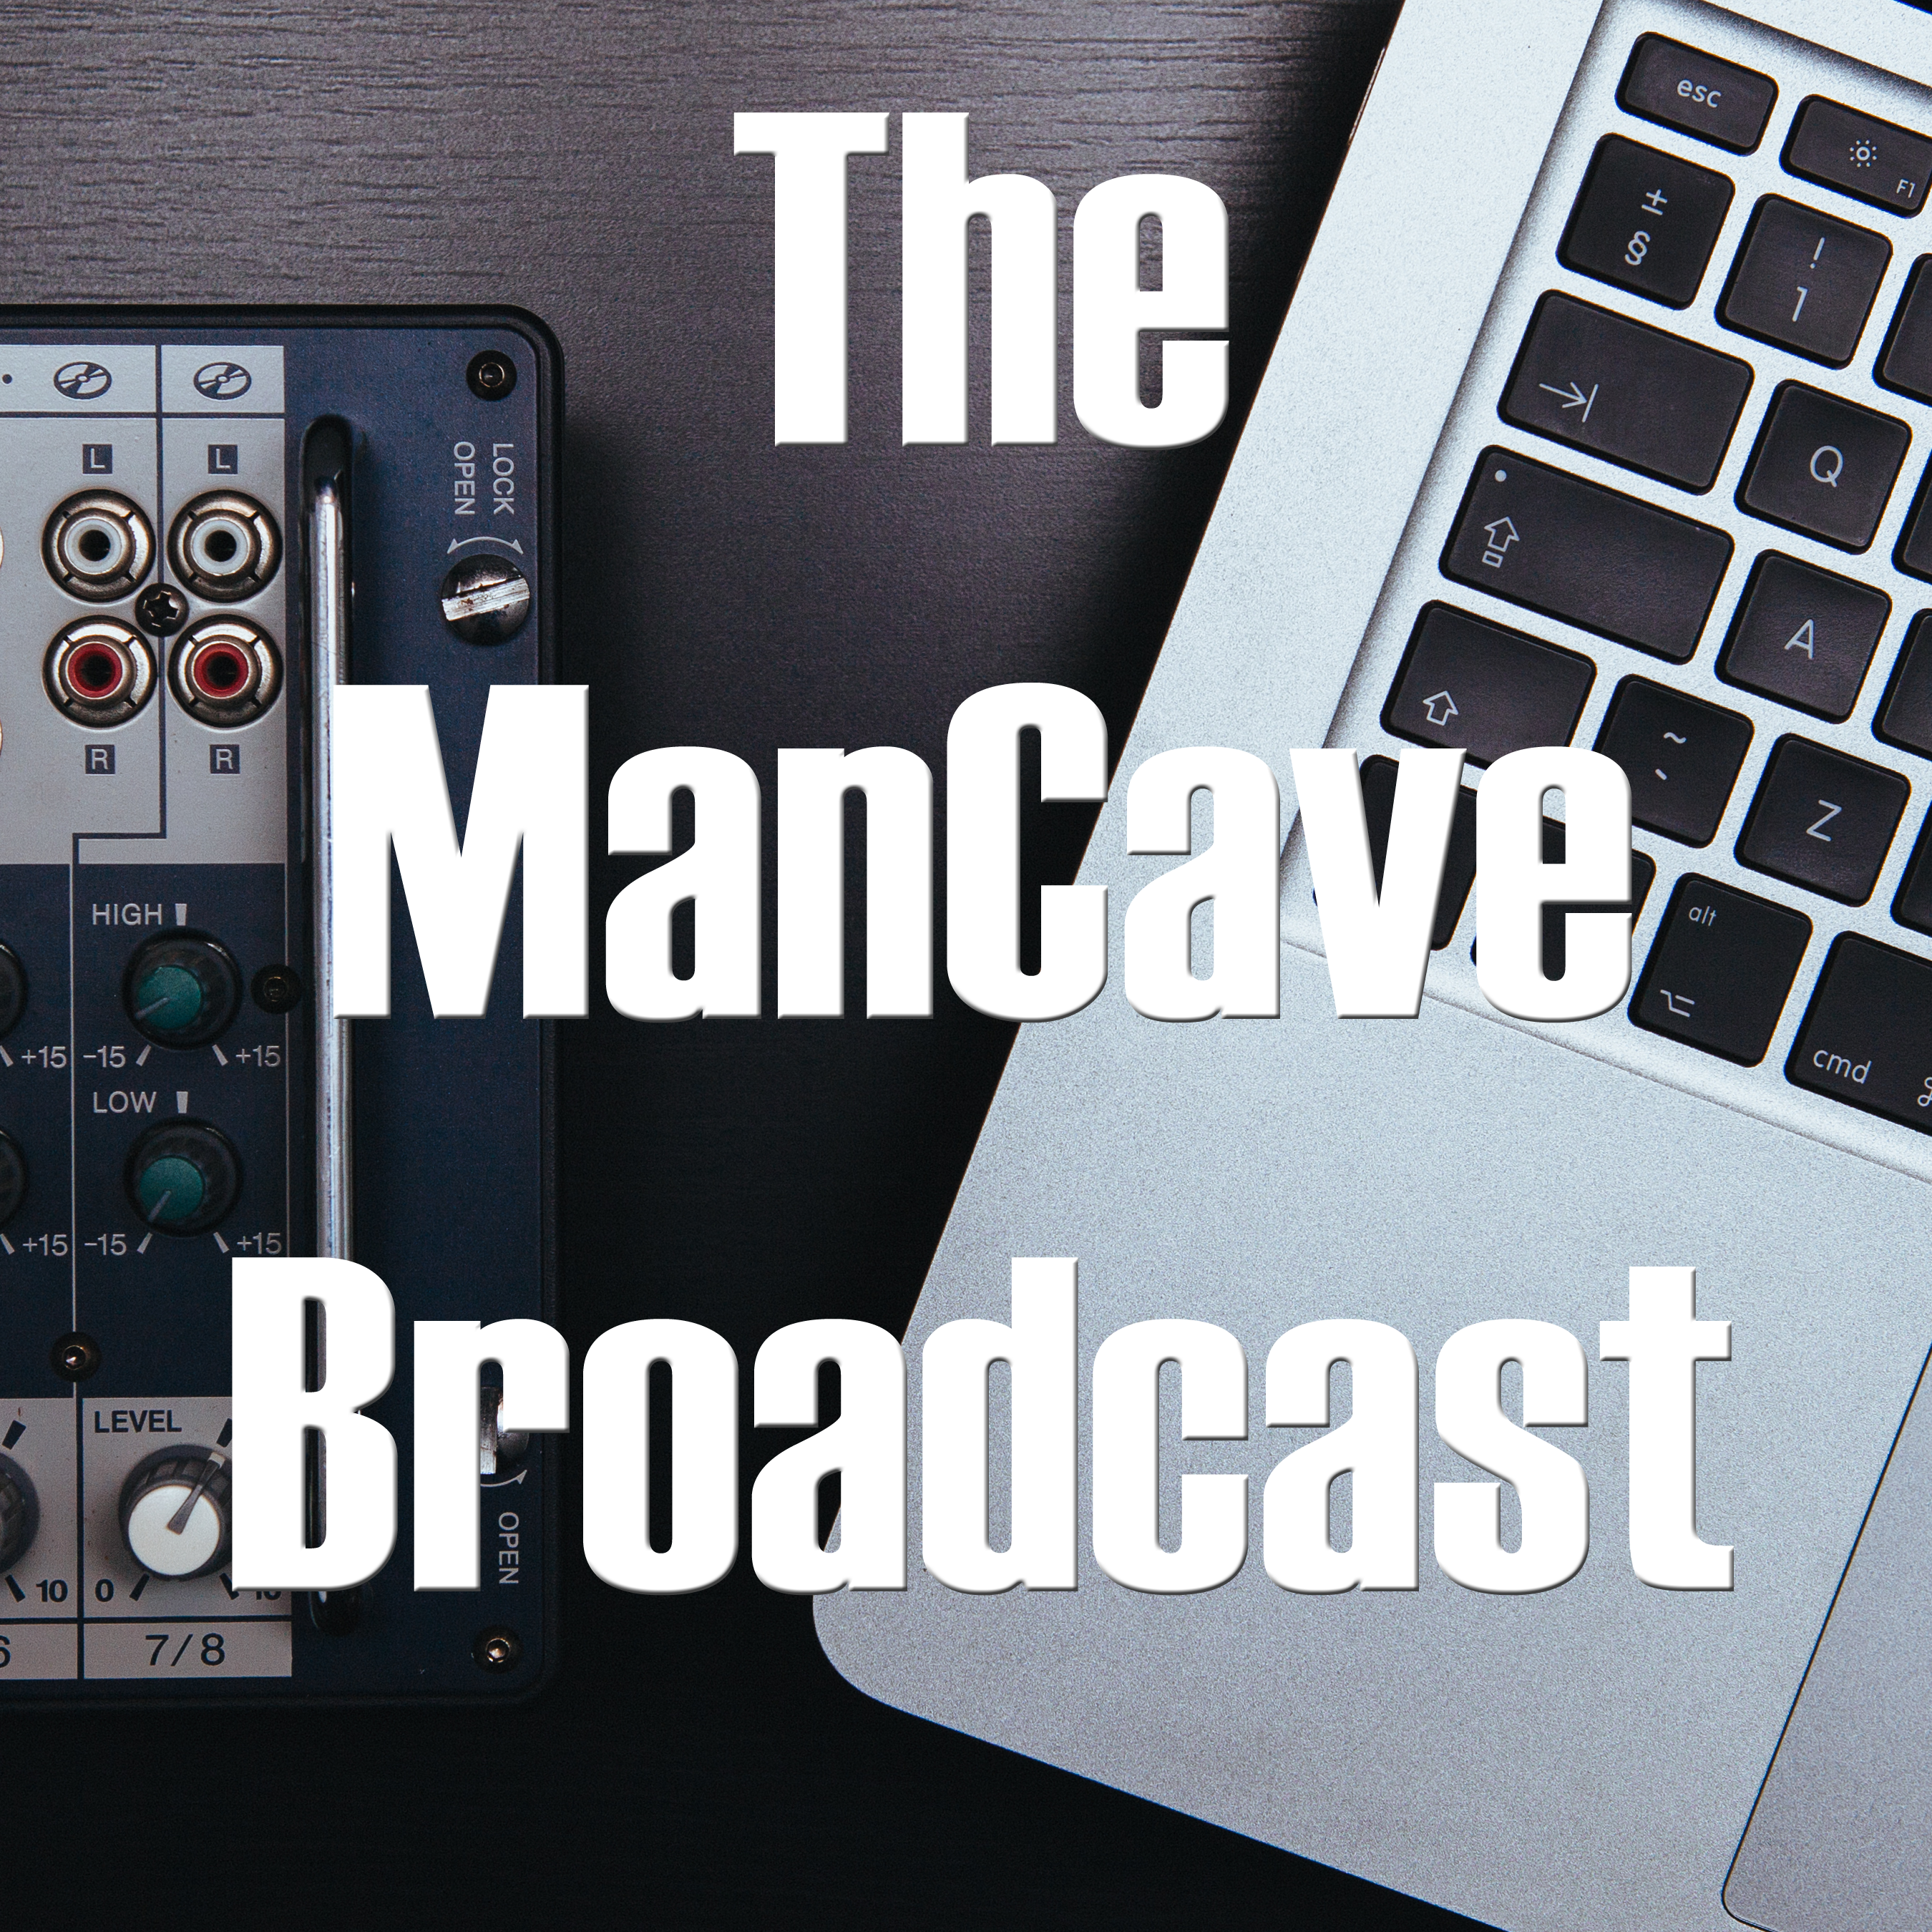 The ManCave Broadcast